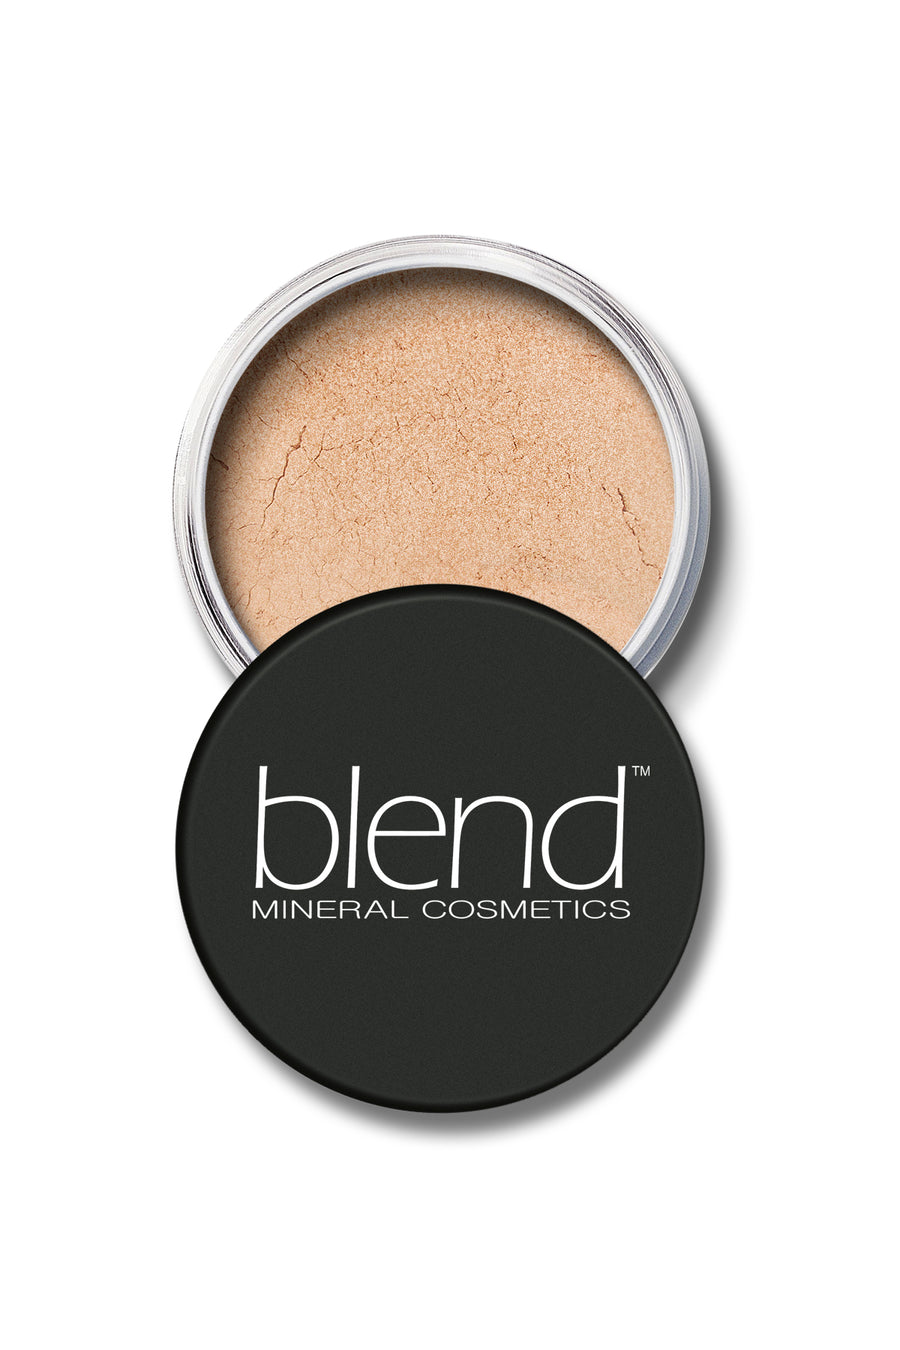 Shimmer Mineral SPF 15 Foundation #4 - Natural Beige - Blend Mineral Cosmetics